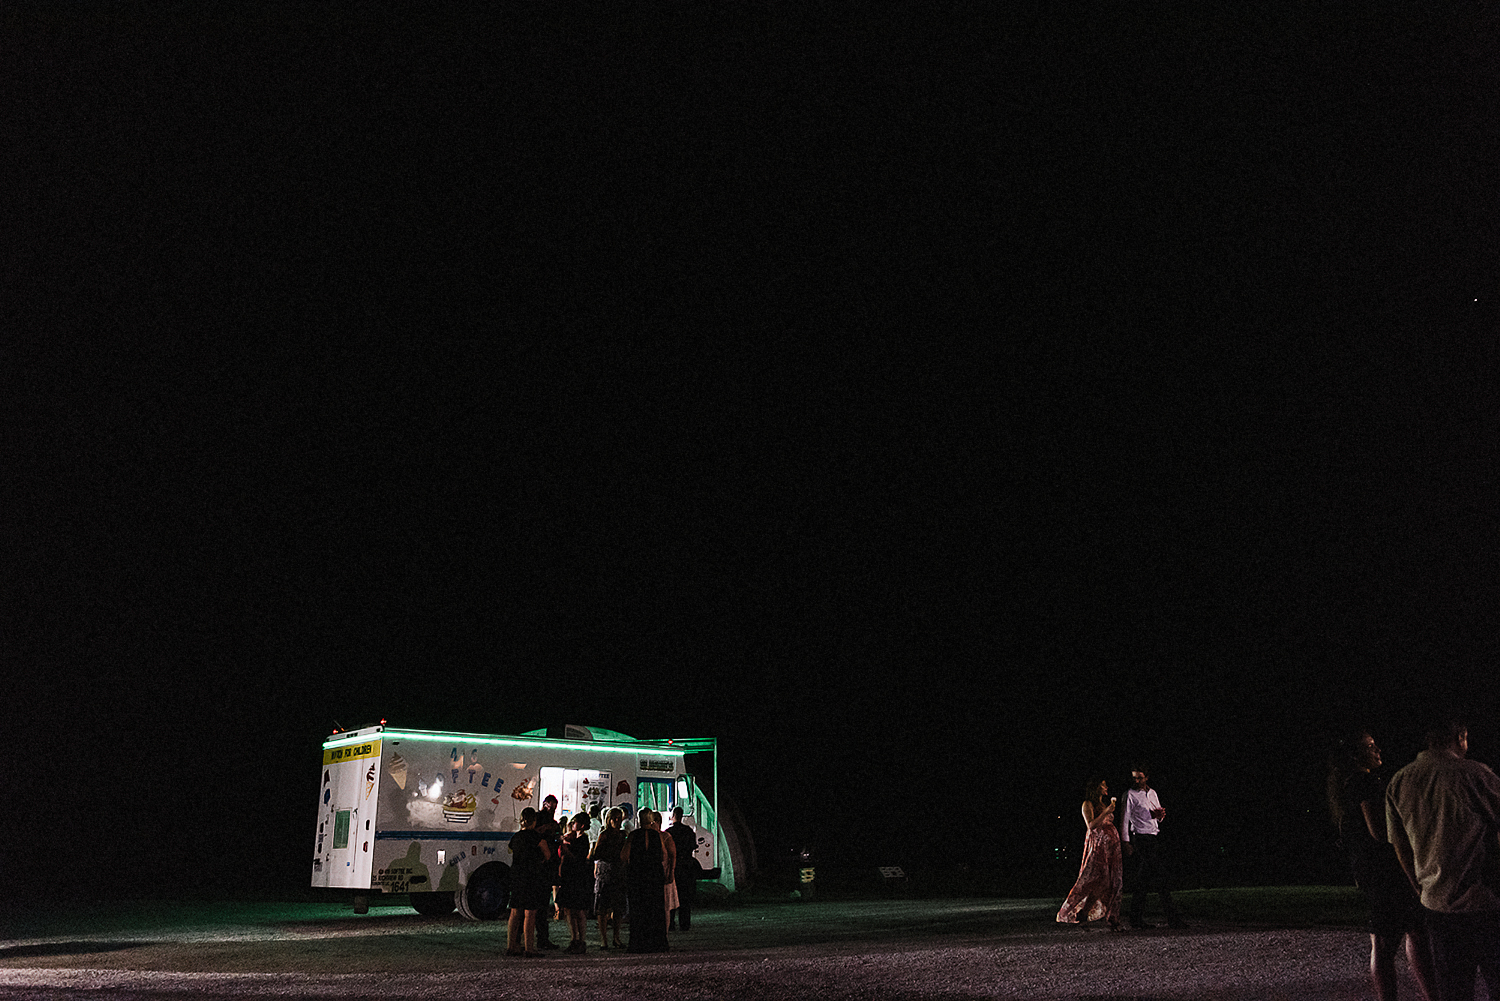 Best-Wedding-Photographers-Toronto-with-Documentary-and-photojournalistic-style-3b-Photography-Intimate-Wedding-at-Dowswell-Barn-Wedding-Photography-scene-details-night-photography-ice-cream-truck-detail-softcone-epic-cinematic-epic.jpg